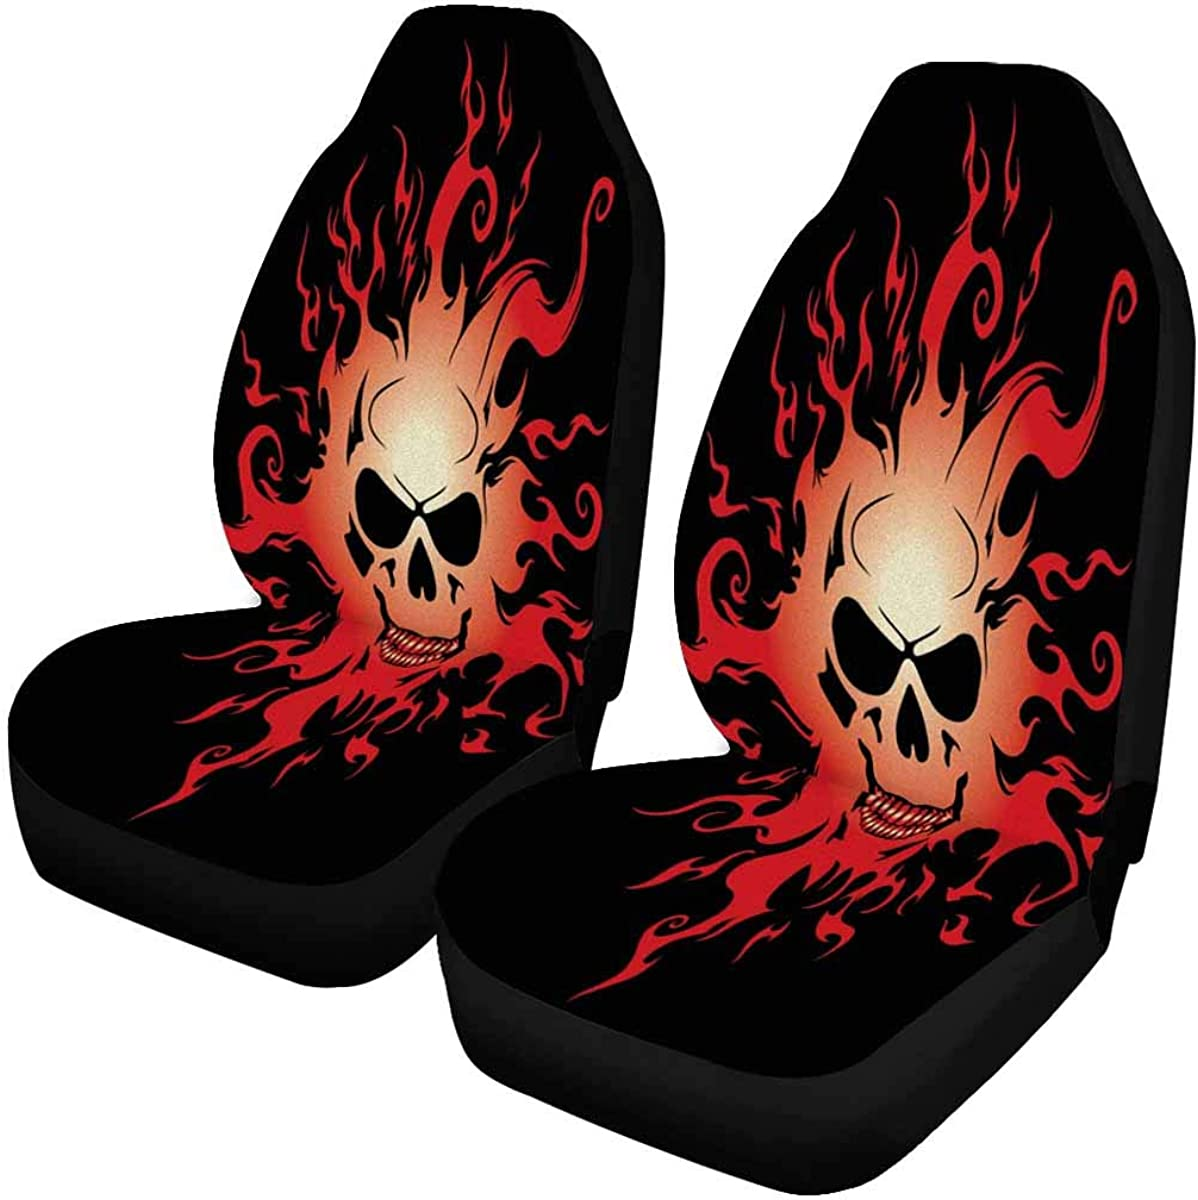 INTERESTPRINT Burning Skull Front Car Seat Covers Set of 2, Entire Seat Protection, Car Front Seat Cushion for Pets Running Gym